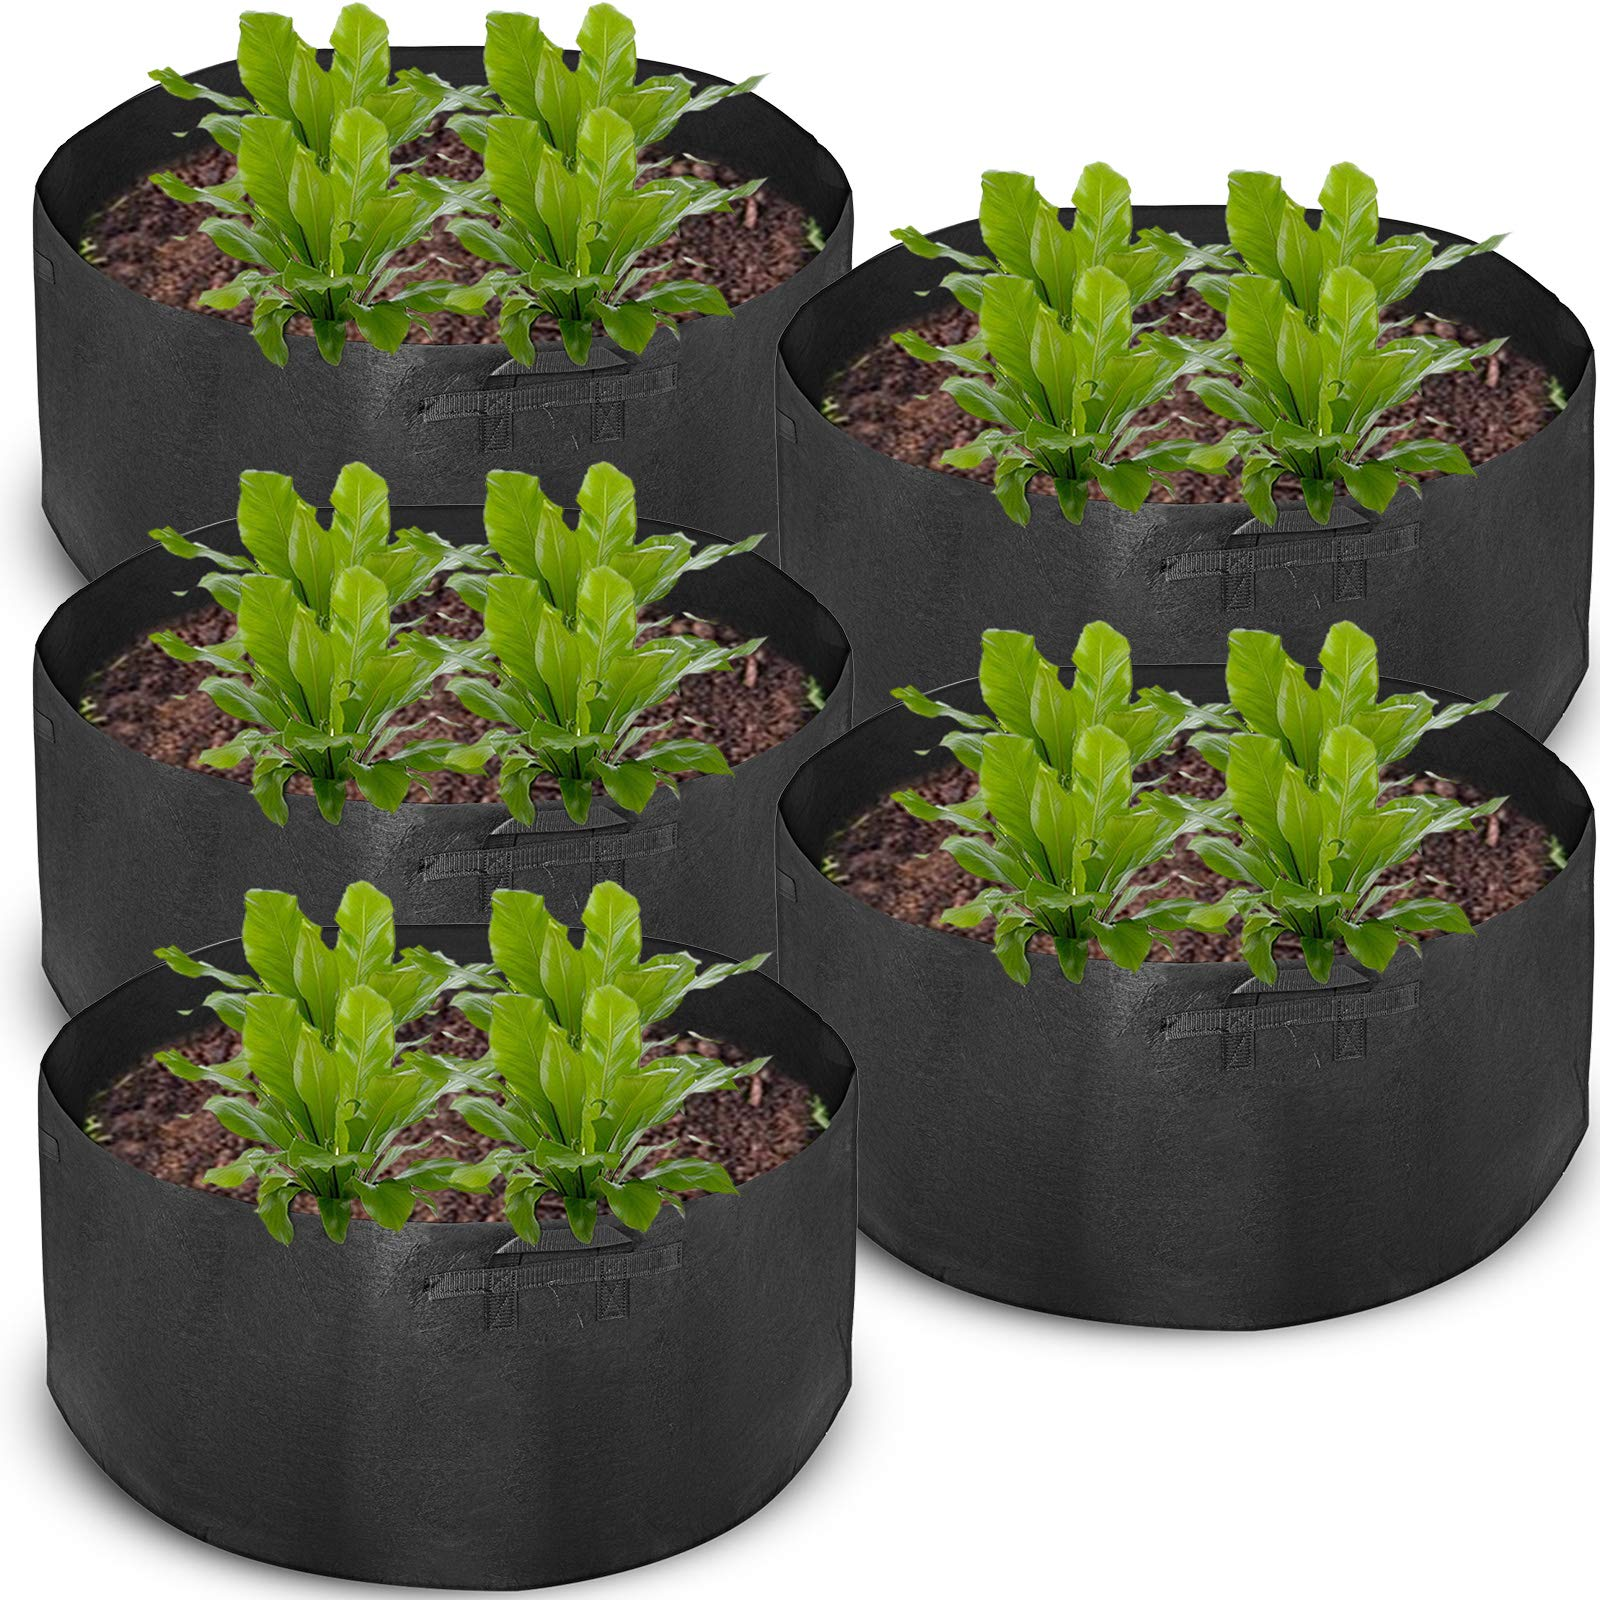 Mophorn 5-Pack 200 Gallon Plant Grow Bag Aeration Fabric Pots with Handles Black Grow Bag Plant Container for Garden Planting Washable and Reusable (5-Pack 200 Gallon) by Mophorn